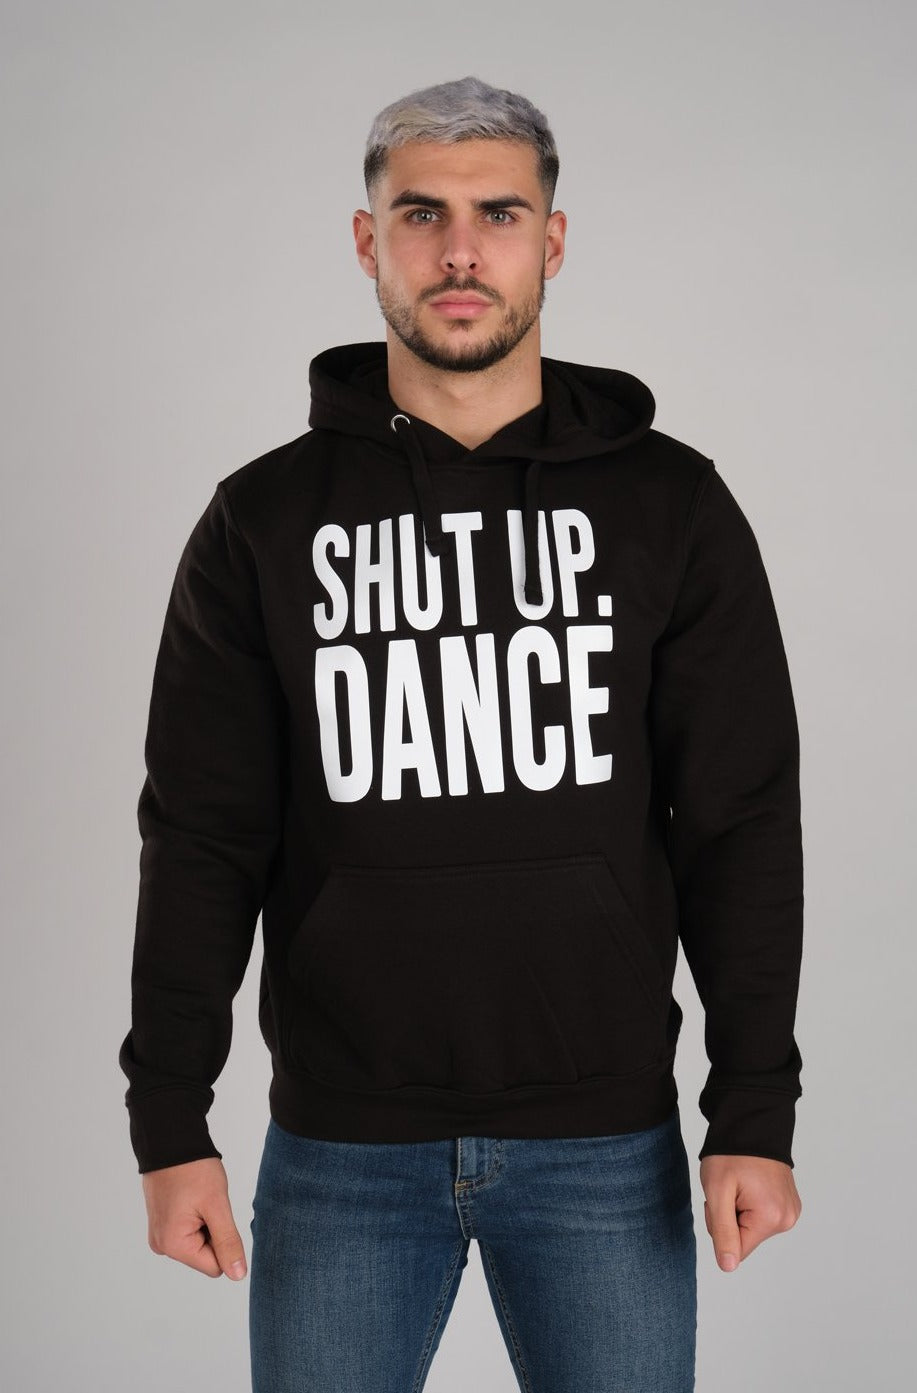 Shut Up Dance Men's Black Hoodie